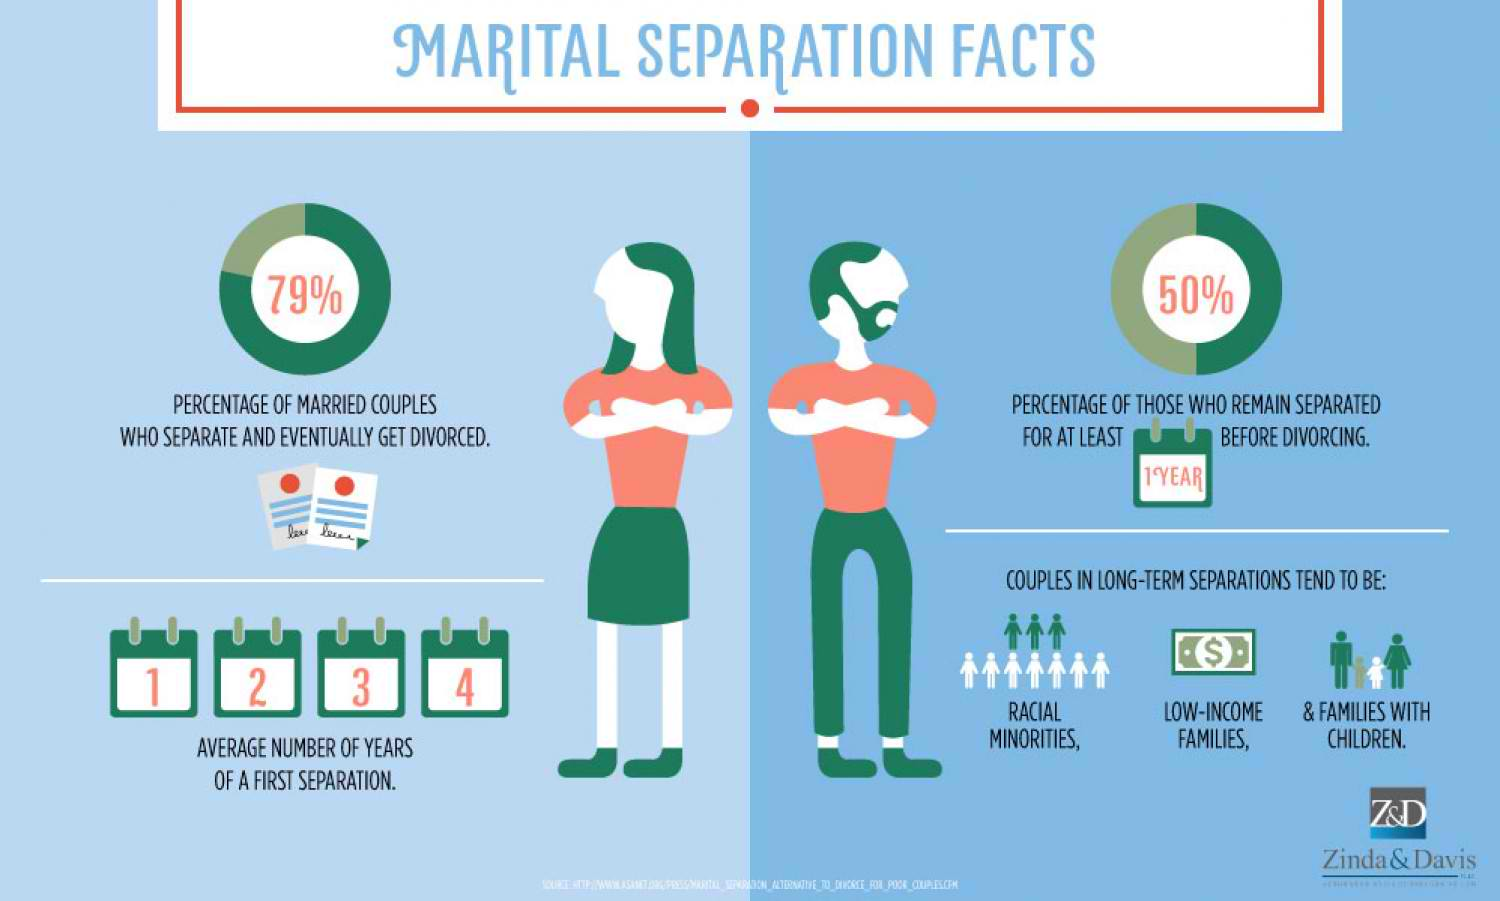 marital-separation-facts_54616a48dc334_w1500